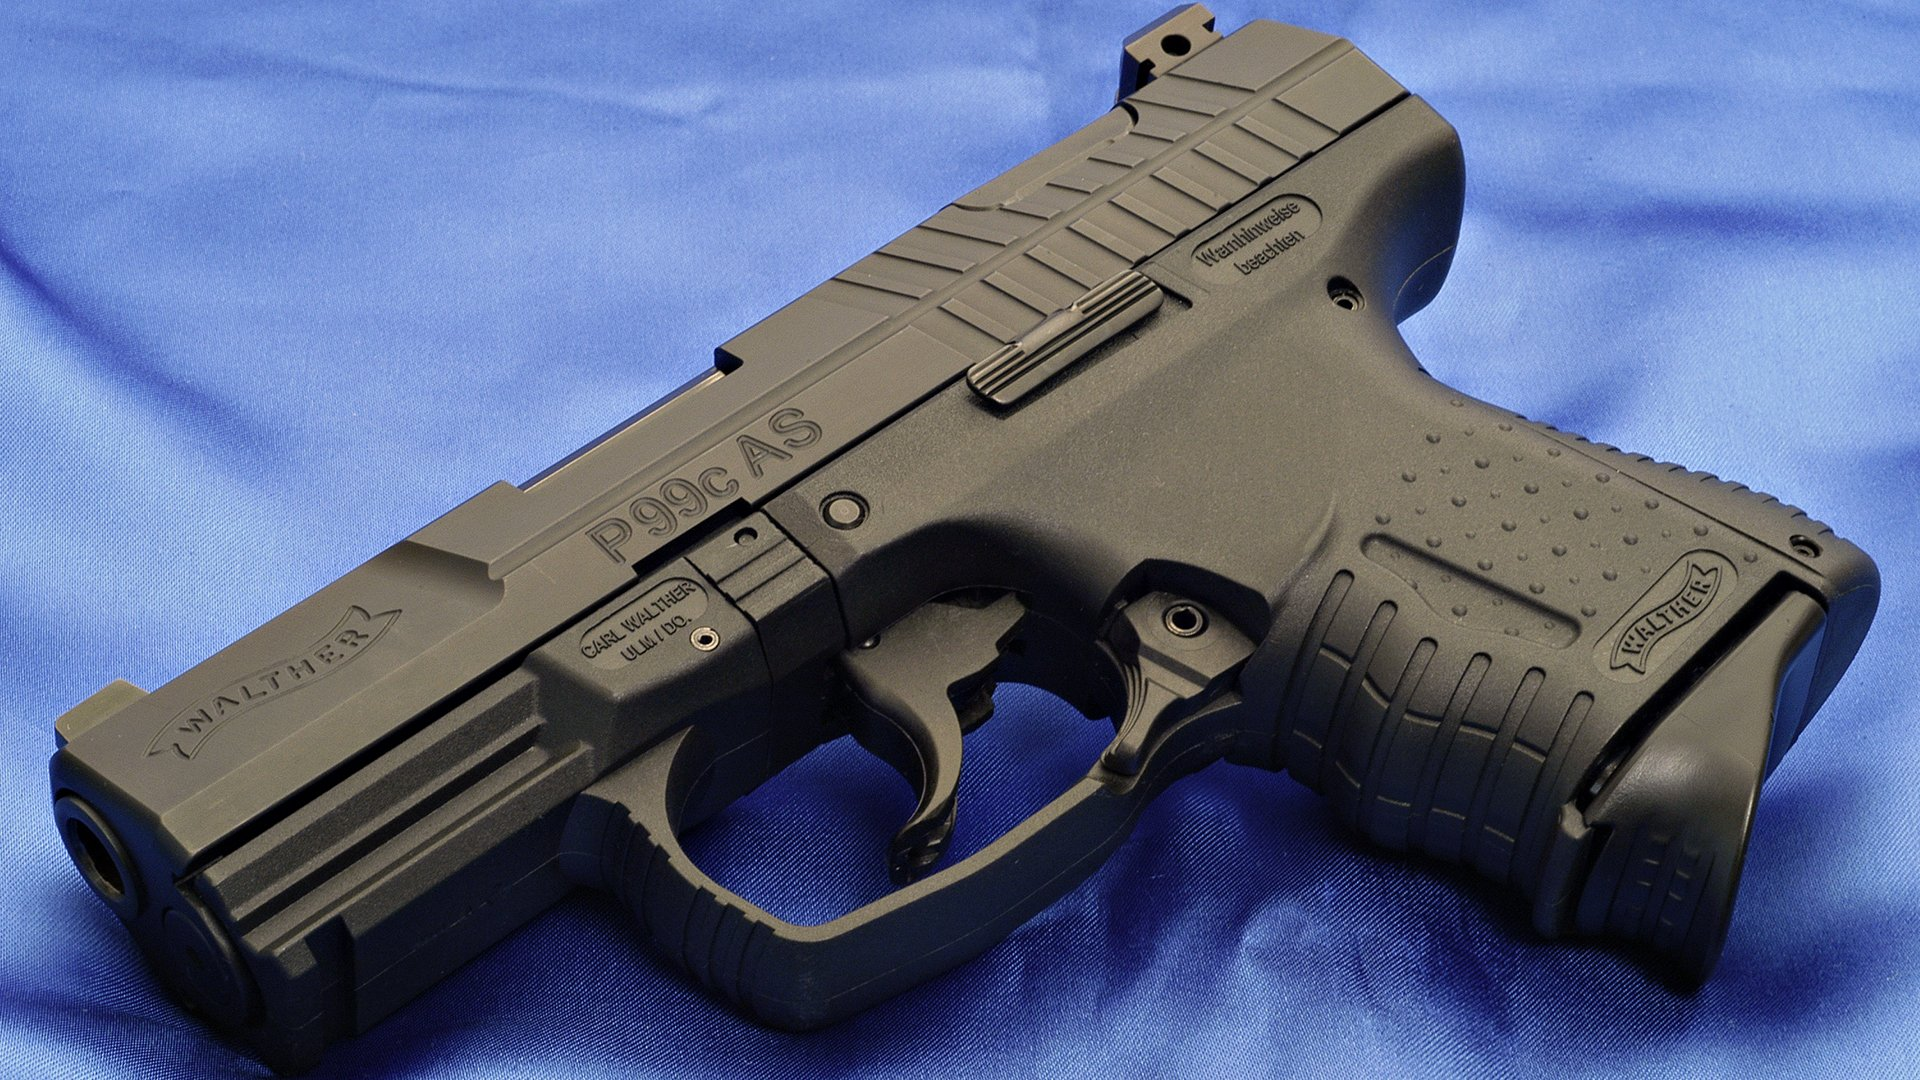 Pictures Pistols Walther P99 Closeup military 1920x1080 1920x1080